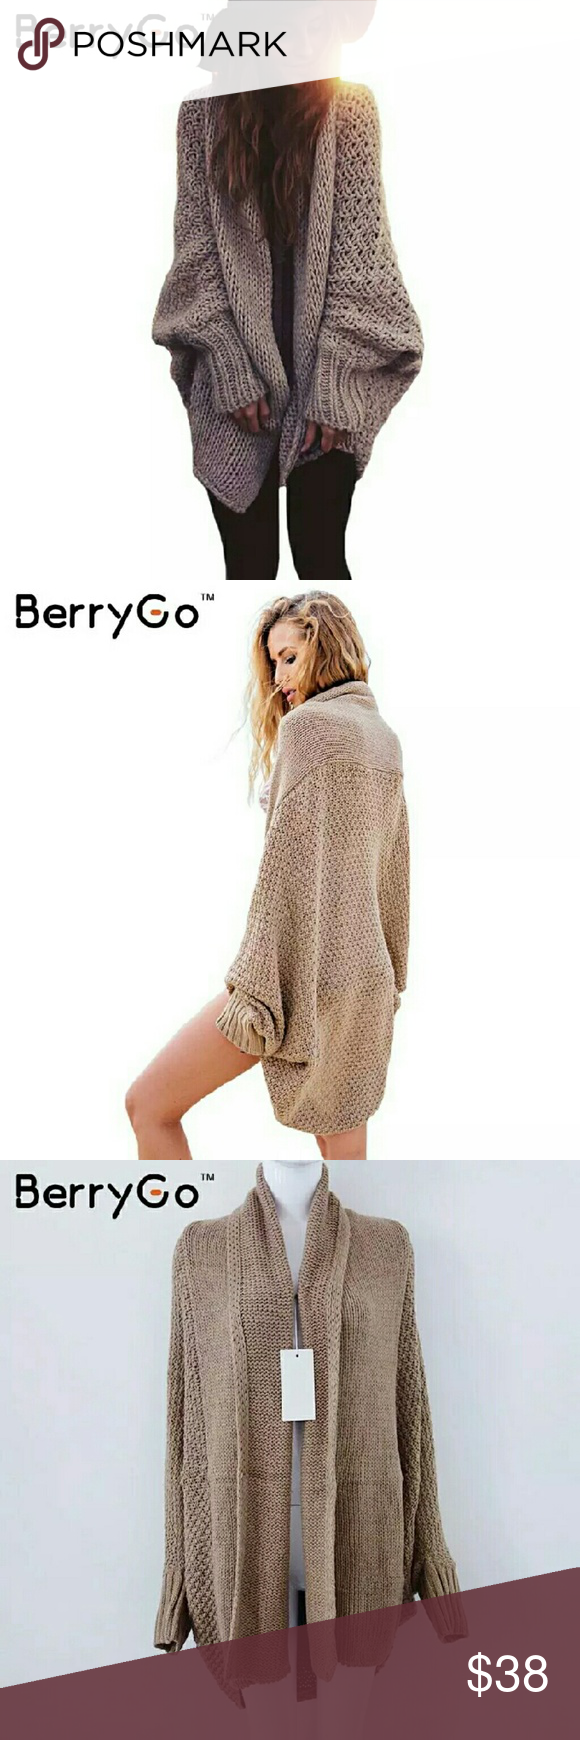 Oversized batwing sweater You will love this fantastic tan batwing ...